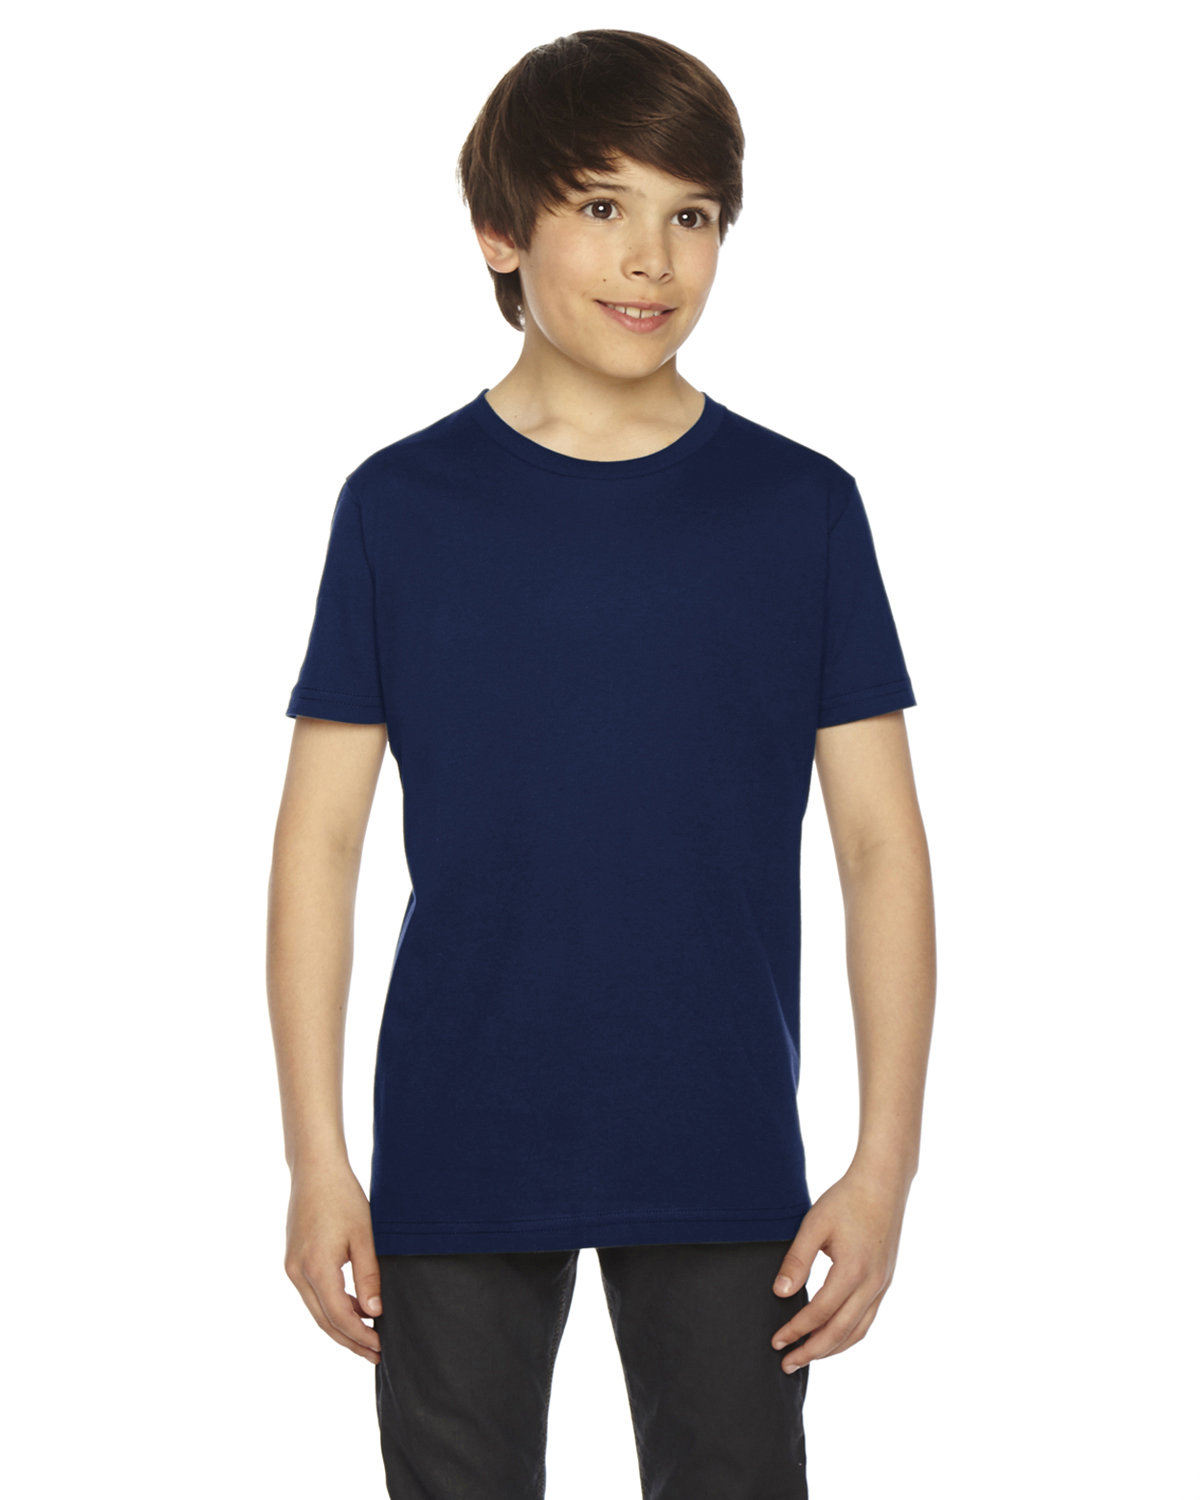 American Apparel Youth Fine Jersey Short-Sleeve T-Shirt NAVY